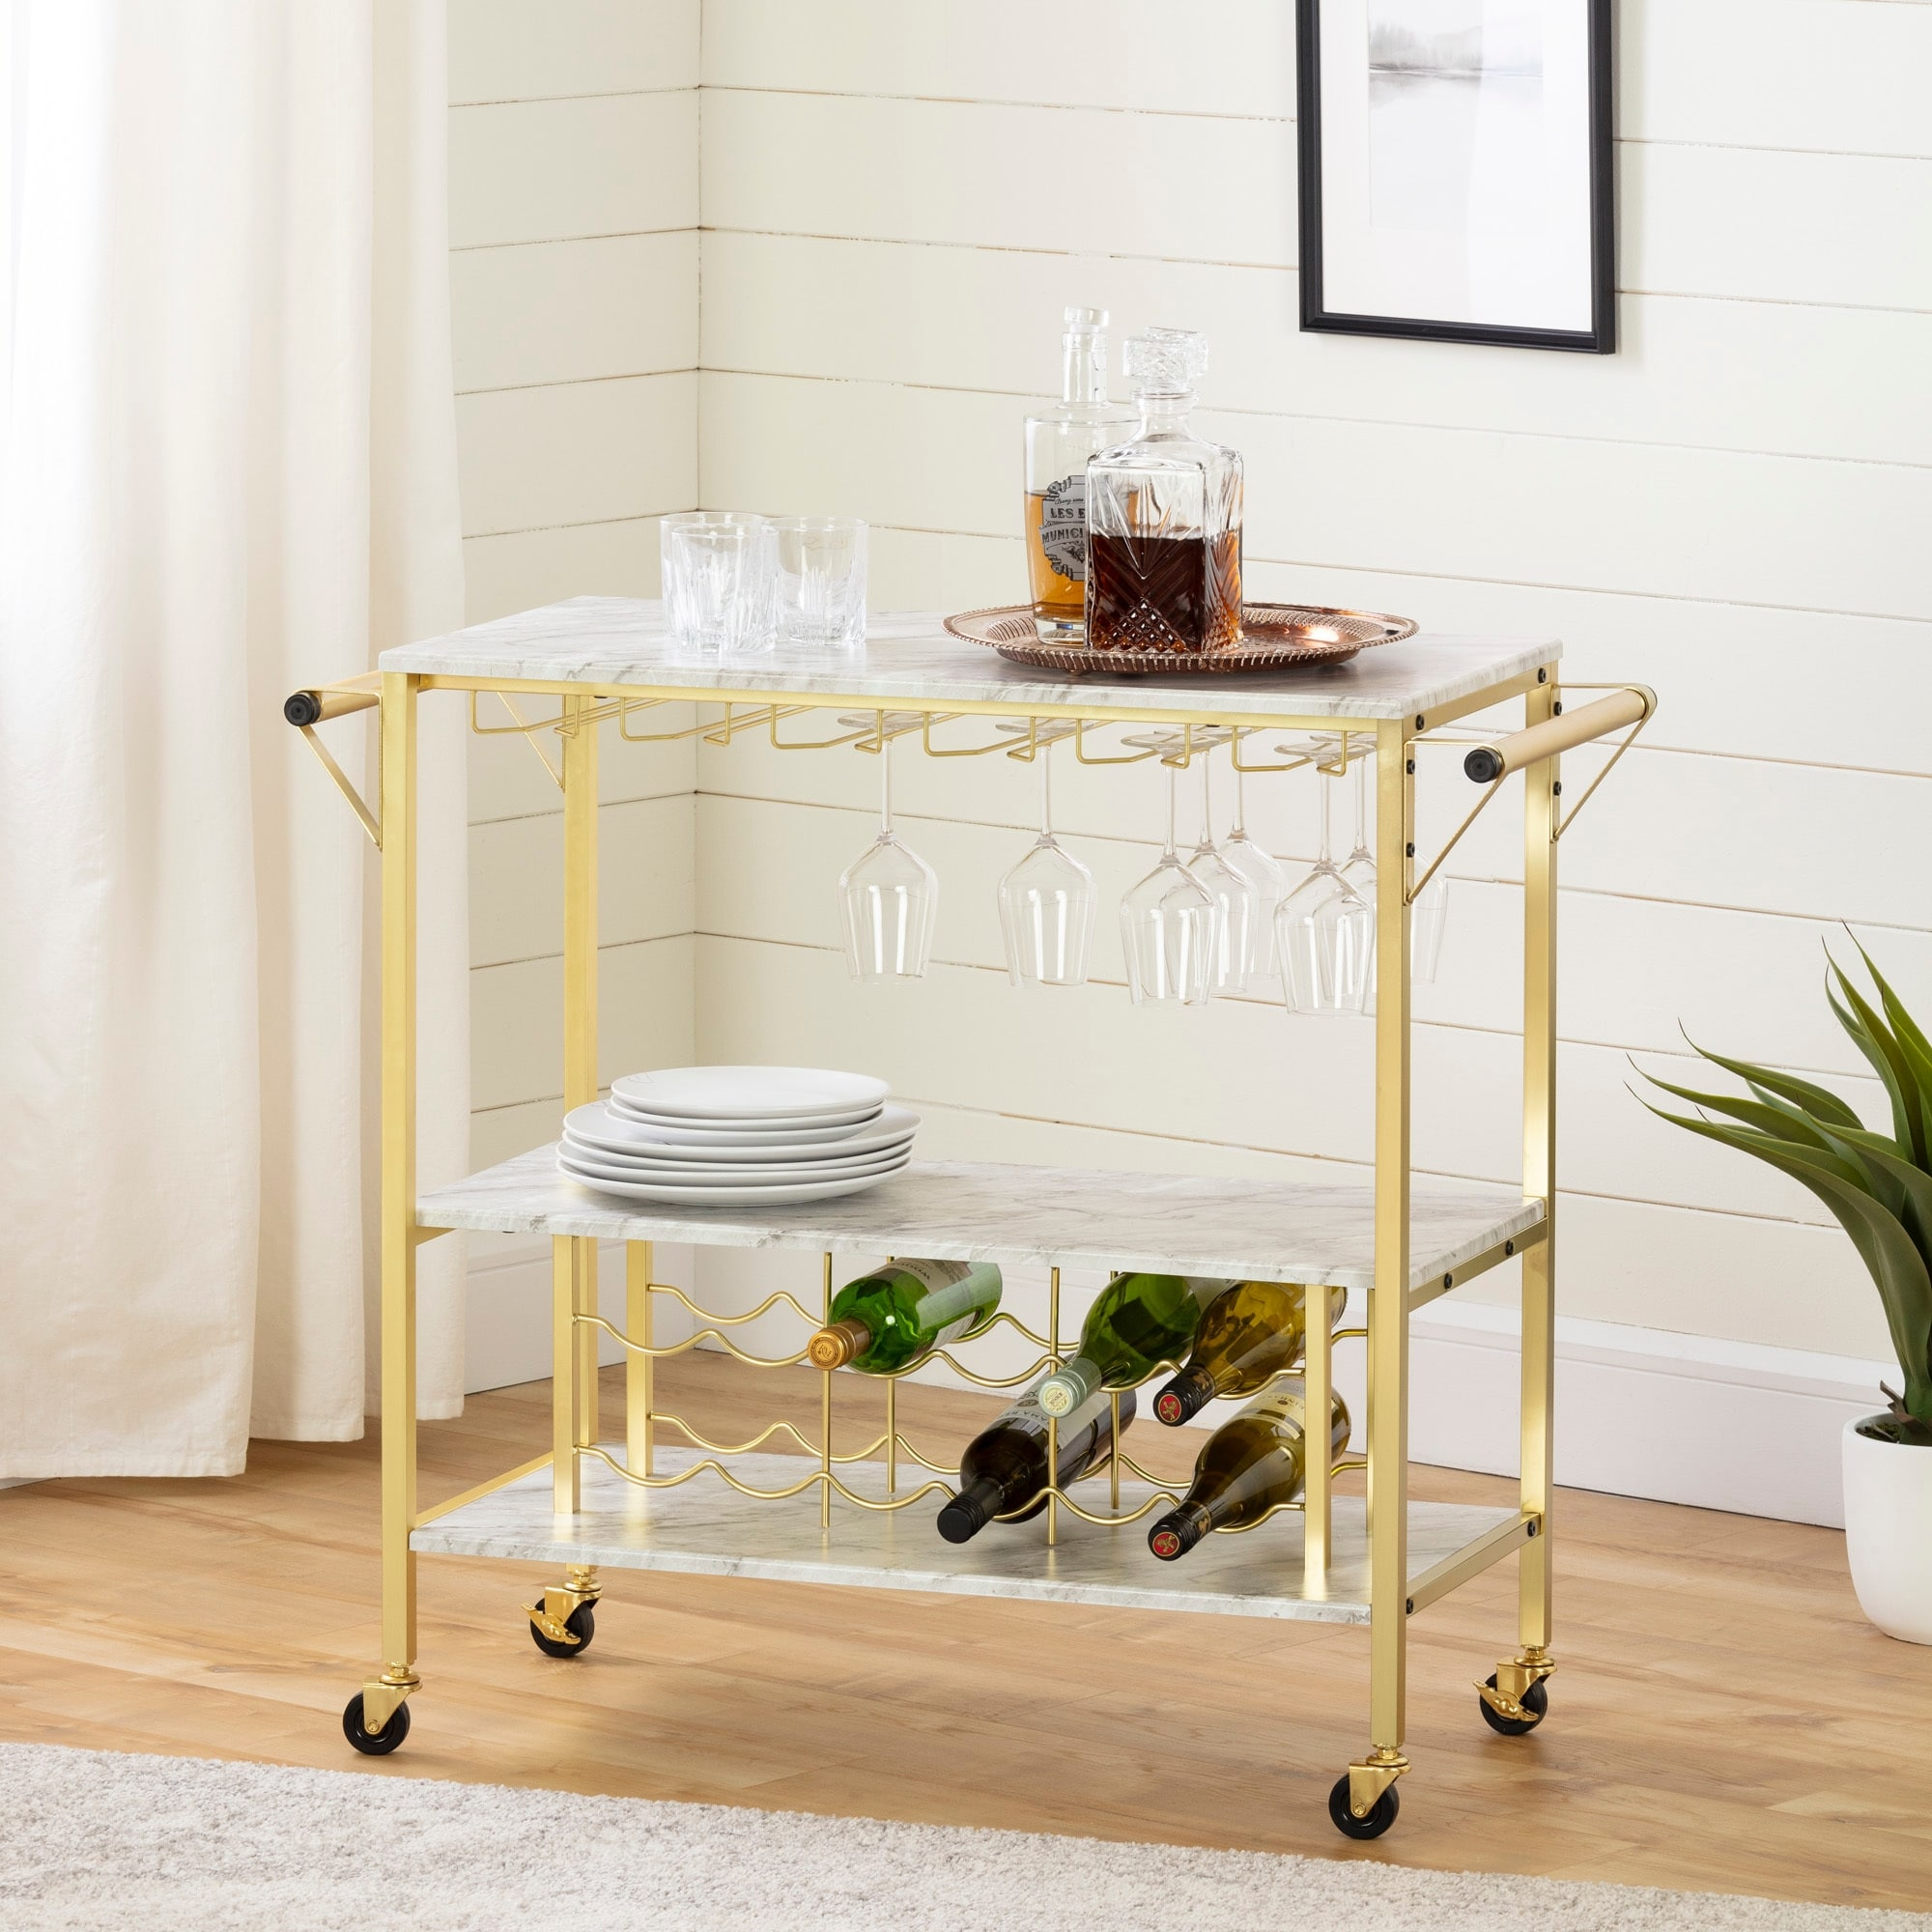 South Shore Maliza Bar Cart W Wine Bottle Storage Glass Rack On Sale Overstock 30794173 Faux Marble And Black